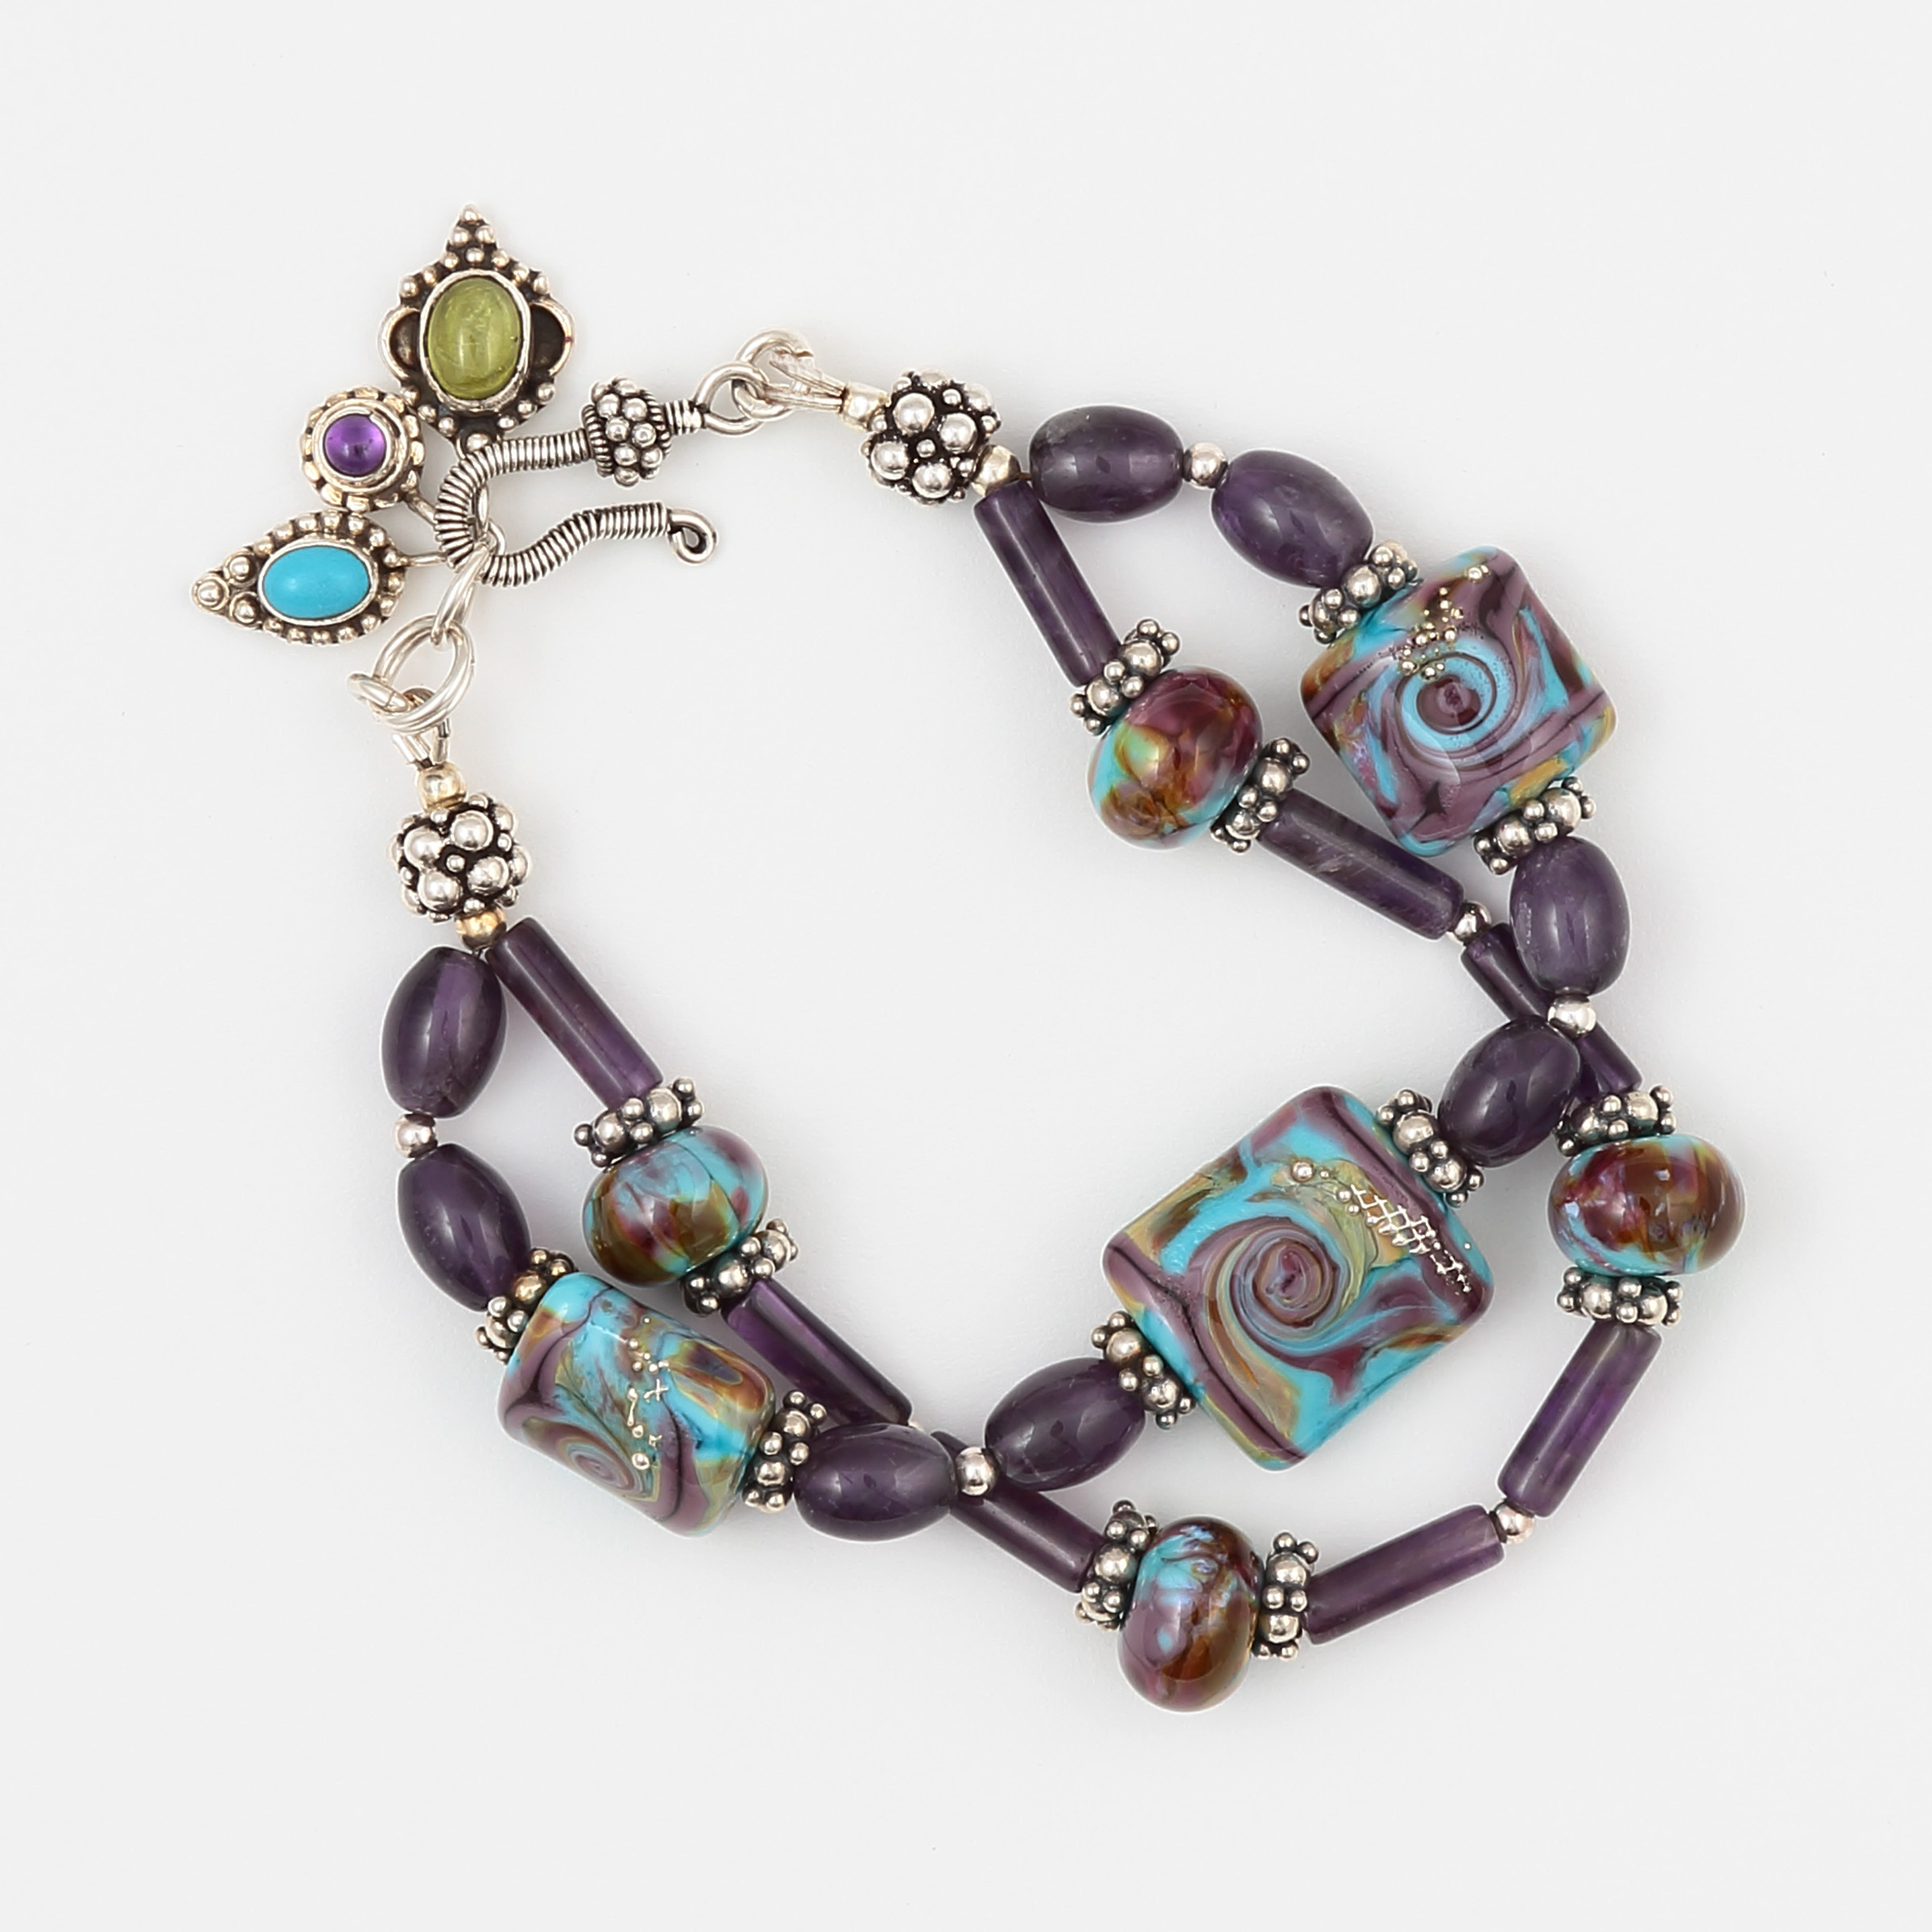 HYPNOTIQUE BRACELET- Amethyst, Peridot, Turquoise with blue, gold, and purple art glass and sterling silver